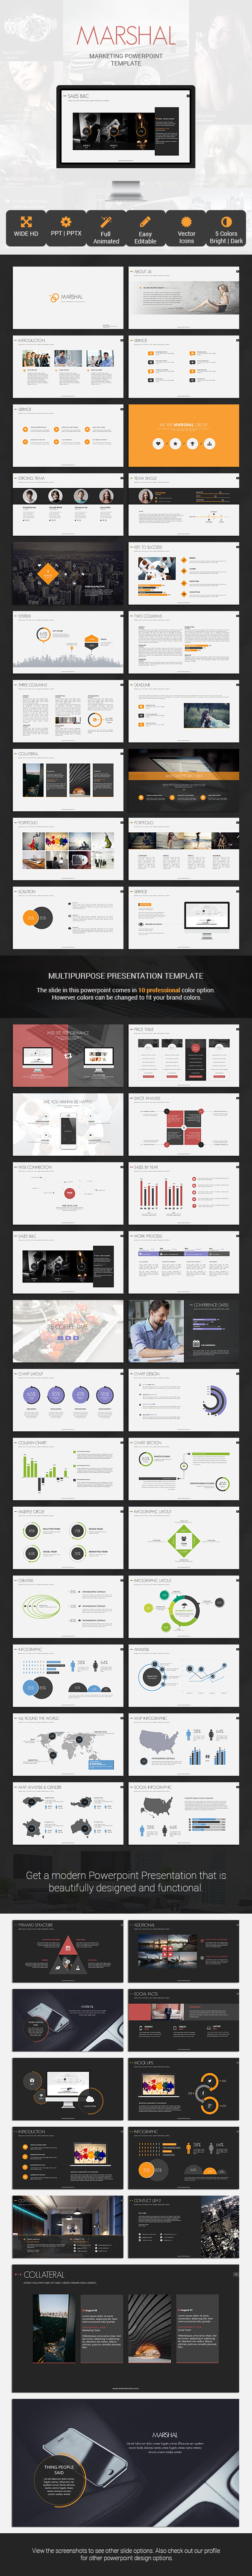 Marshal Marketing Presentation Template by SimpleSmart | GraphicRiver